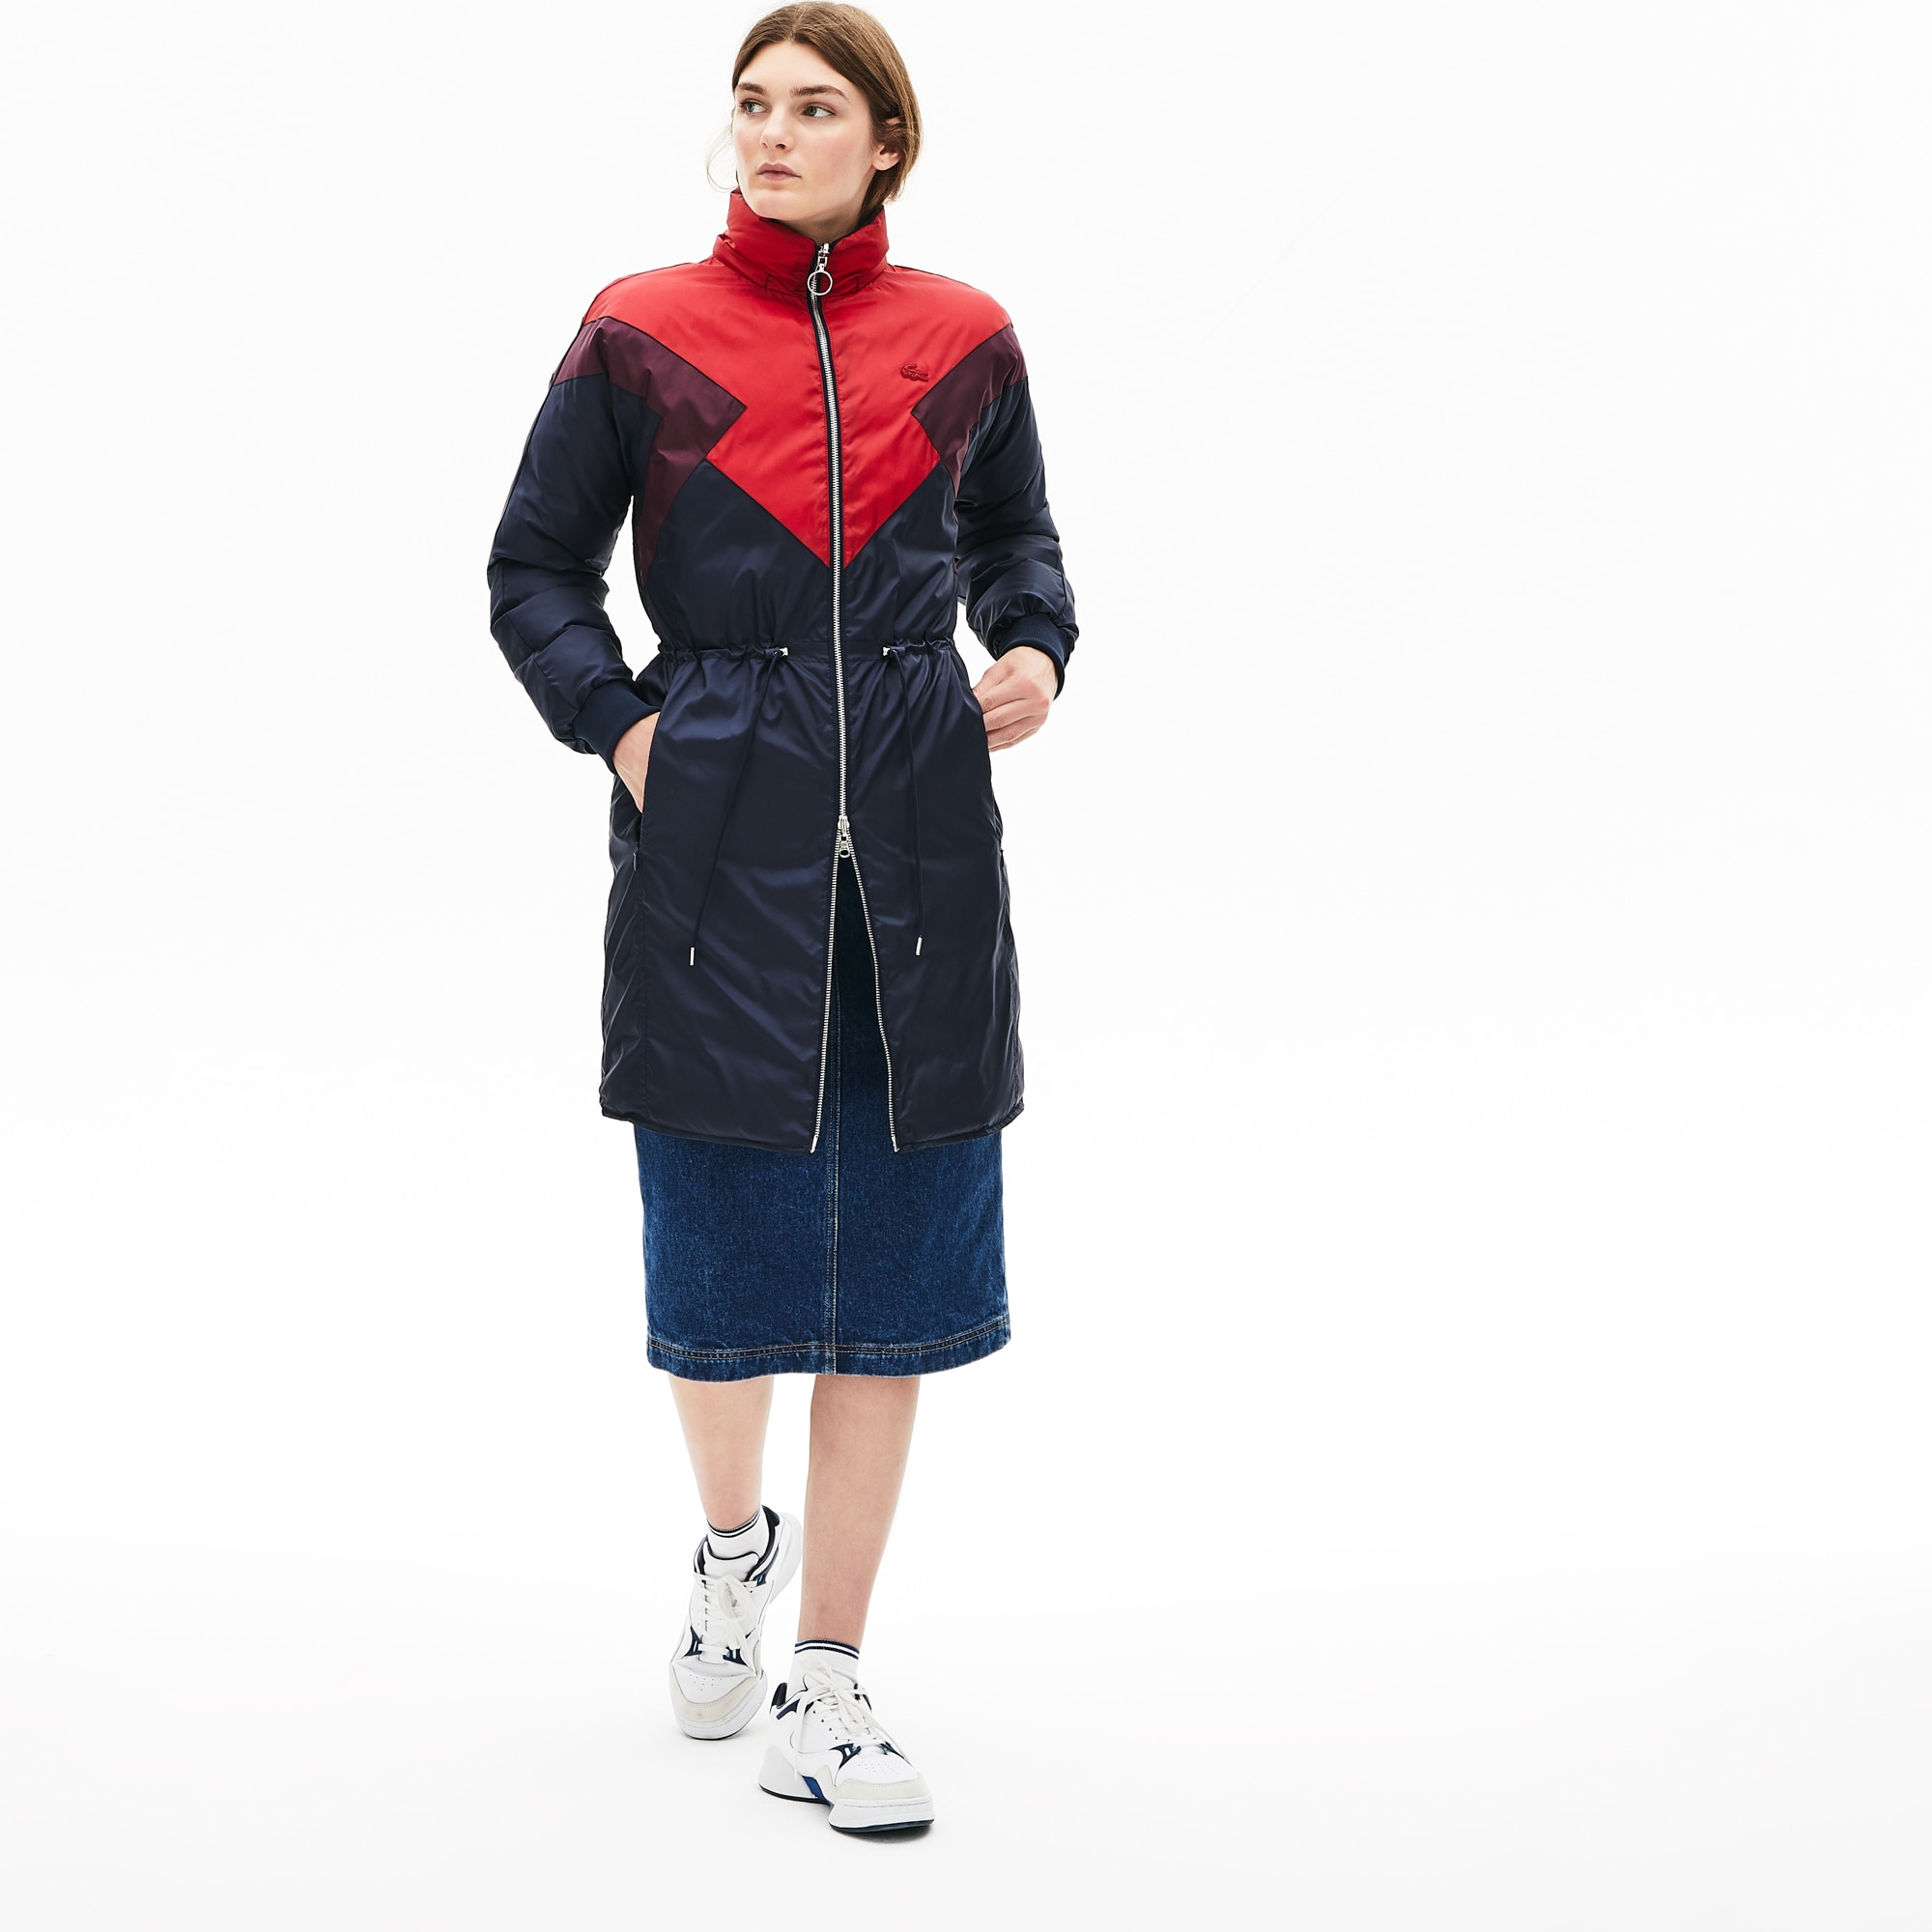 Women's Optional Colourblock Reversible Water-Resistant Long Quilted Jacket